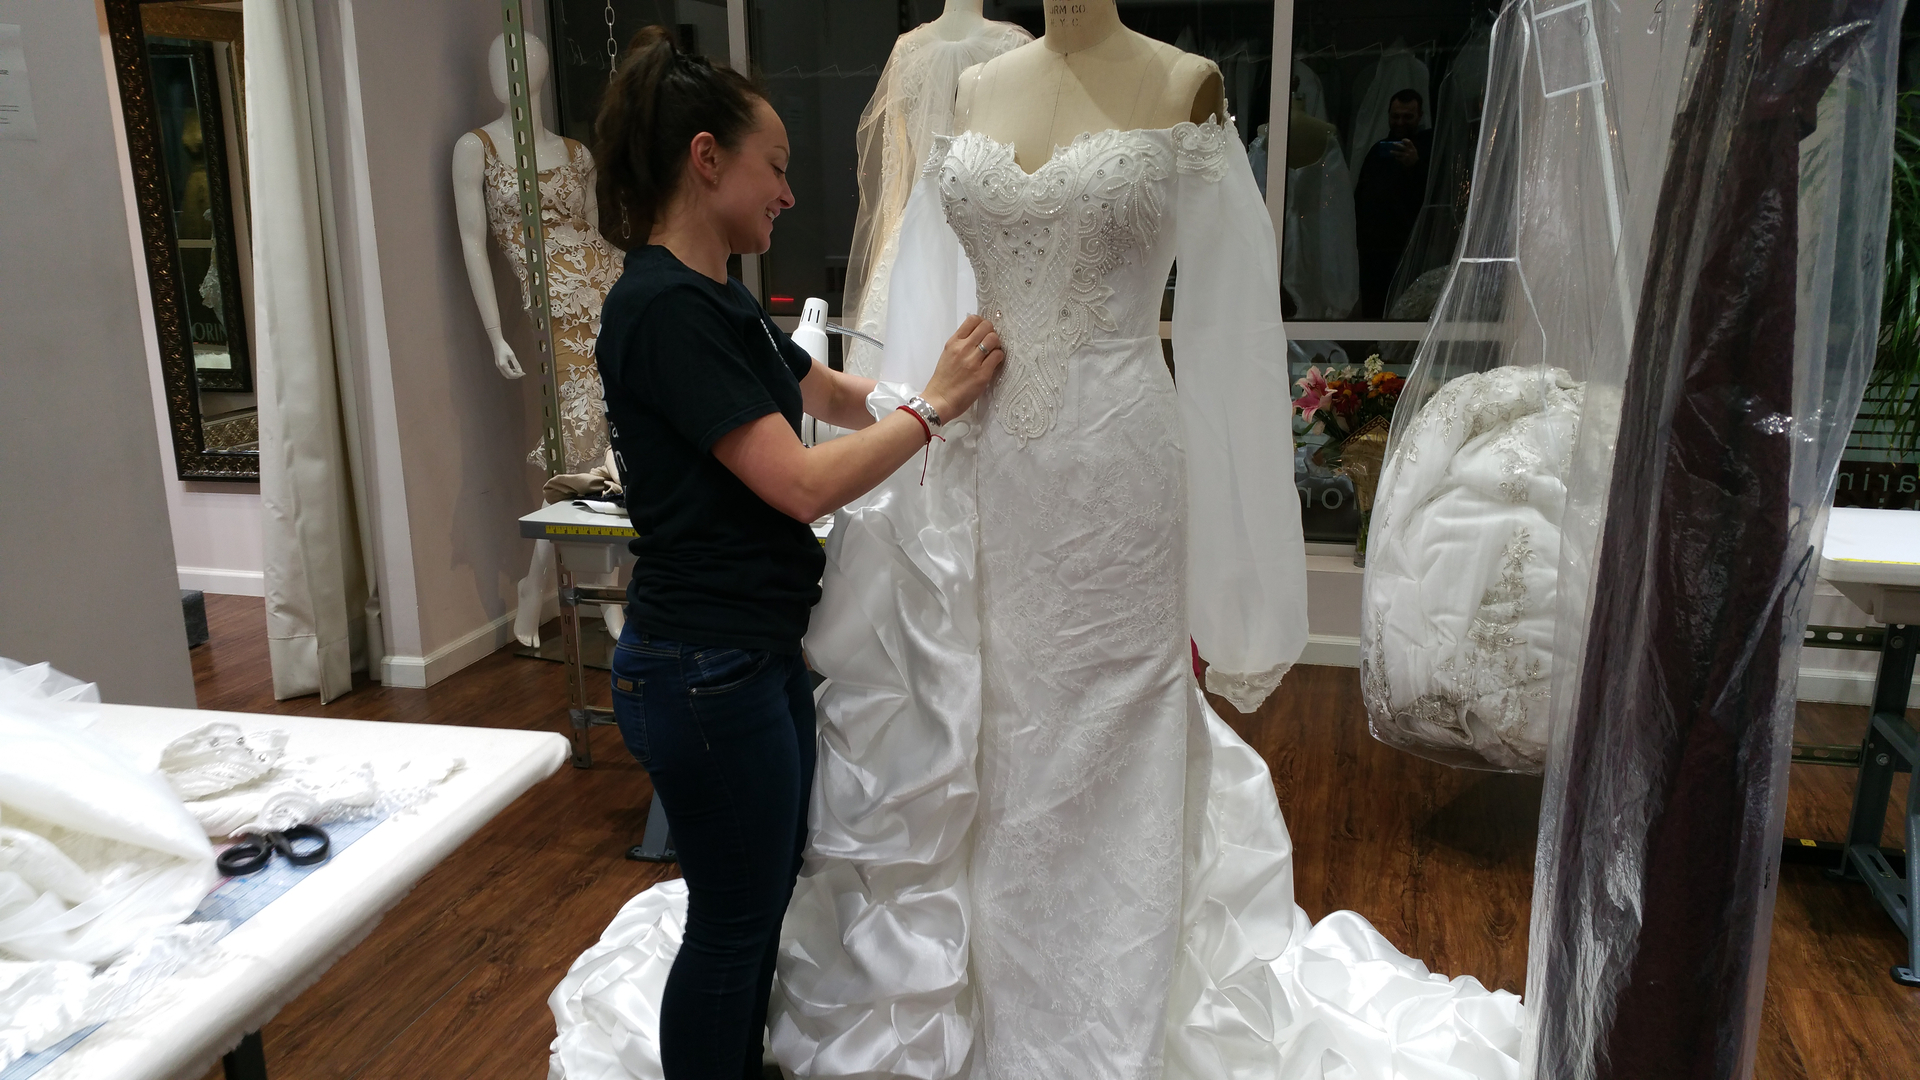 Bridal dress alterations prom alterations wedding dress design need a seamstress we are bridal alterations experts we specialize in wedding dress alterations and custom wedding dress design junglespirit Gallery